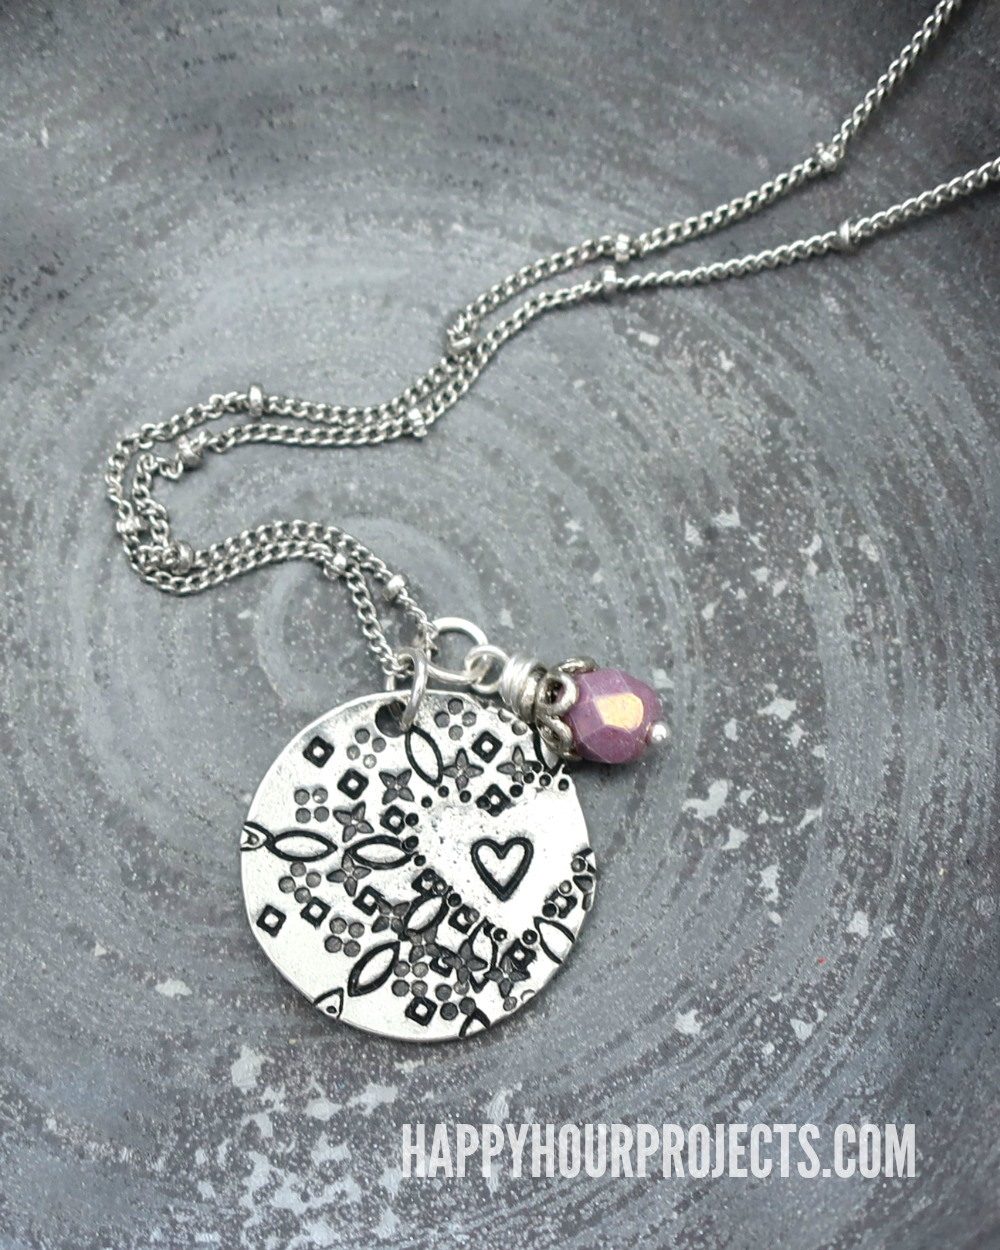 Hand stamped jewelry mandala style heart pendant happy hour projects hand stamped jewelry heart mandala style pendant at happyhourprojects makes a great mozeypictures